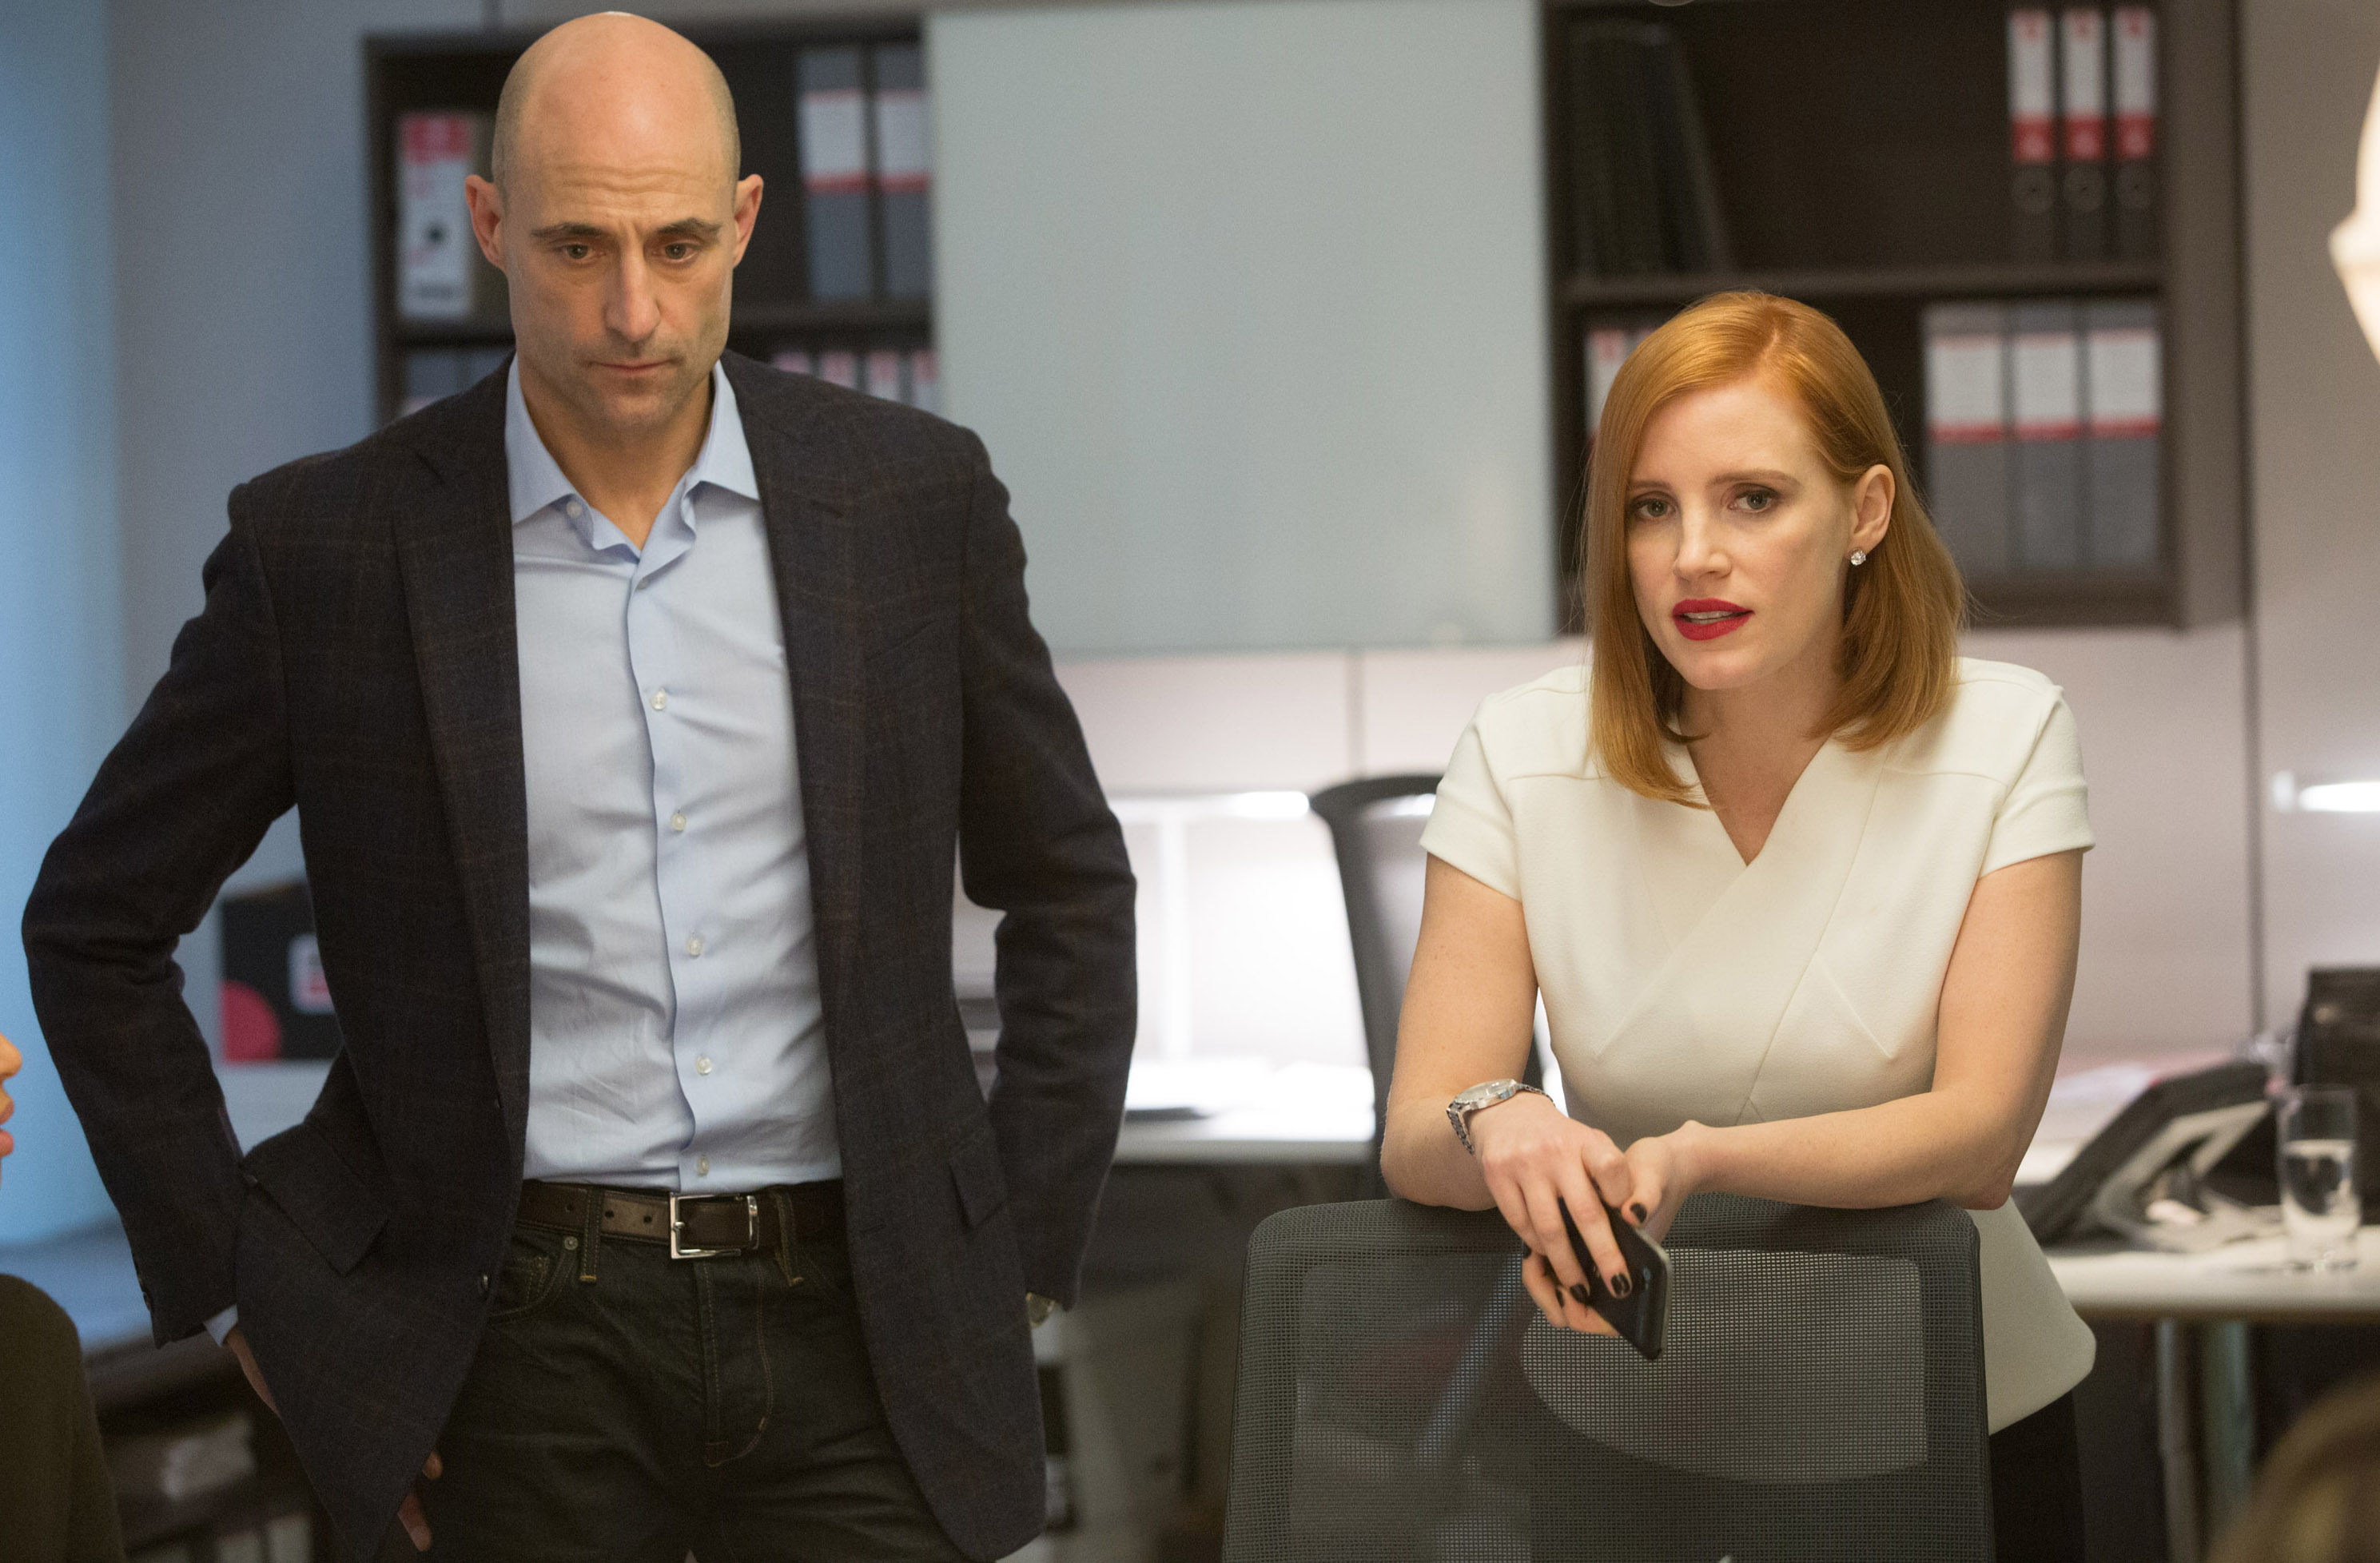 Jessica Chastain's 'Miss Sloane' has some 'tricks up her sleeve'